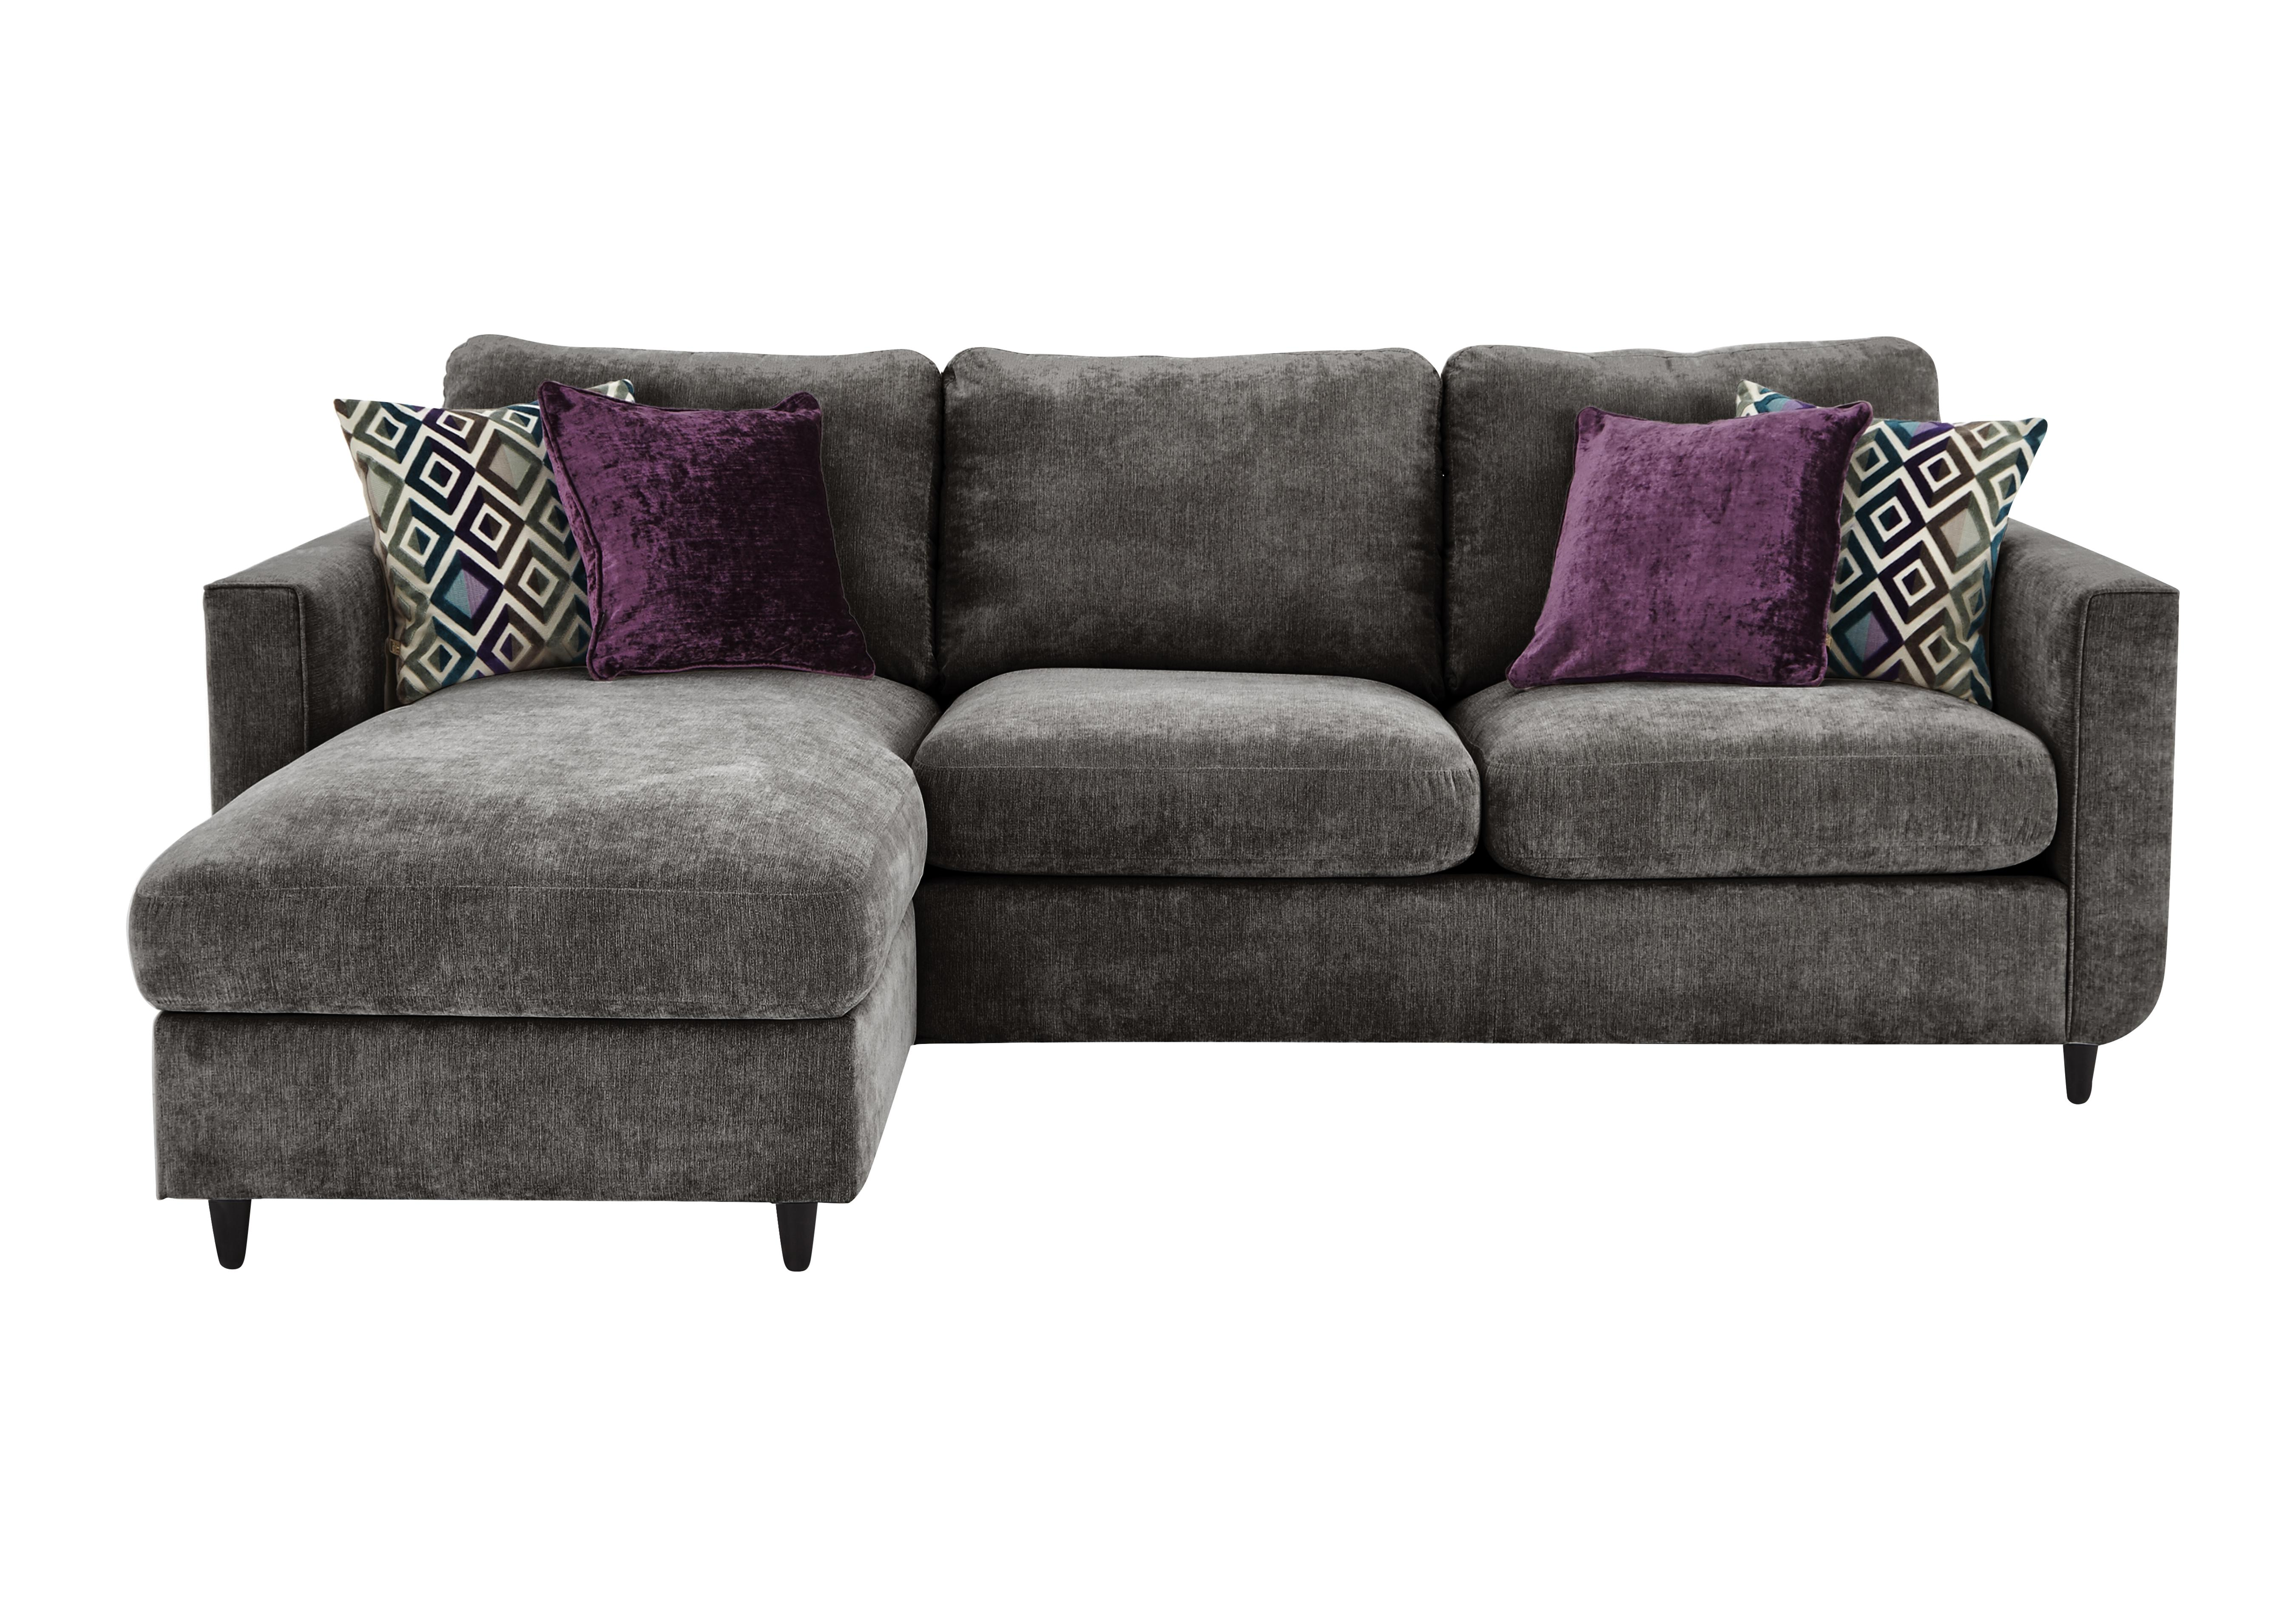 grey sofas save £100 ADNIOGL